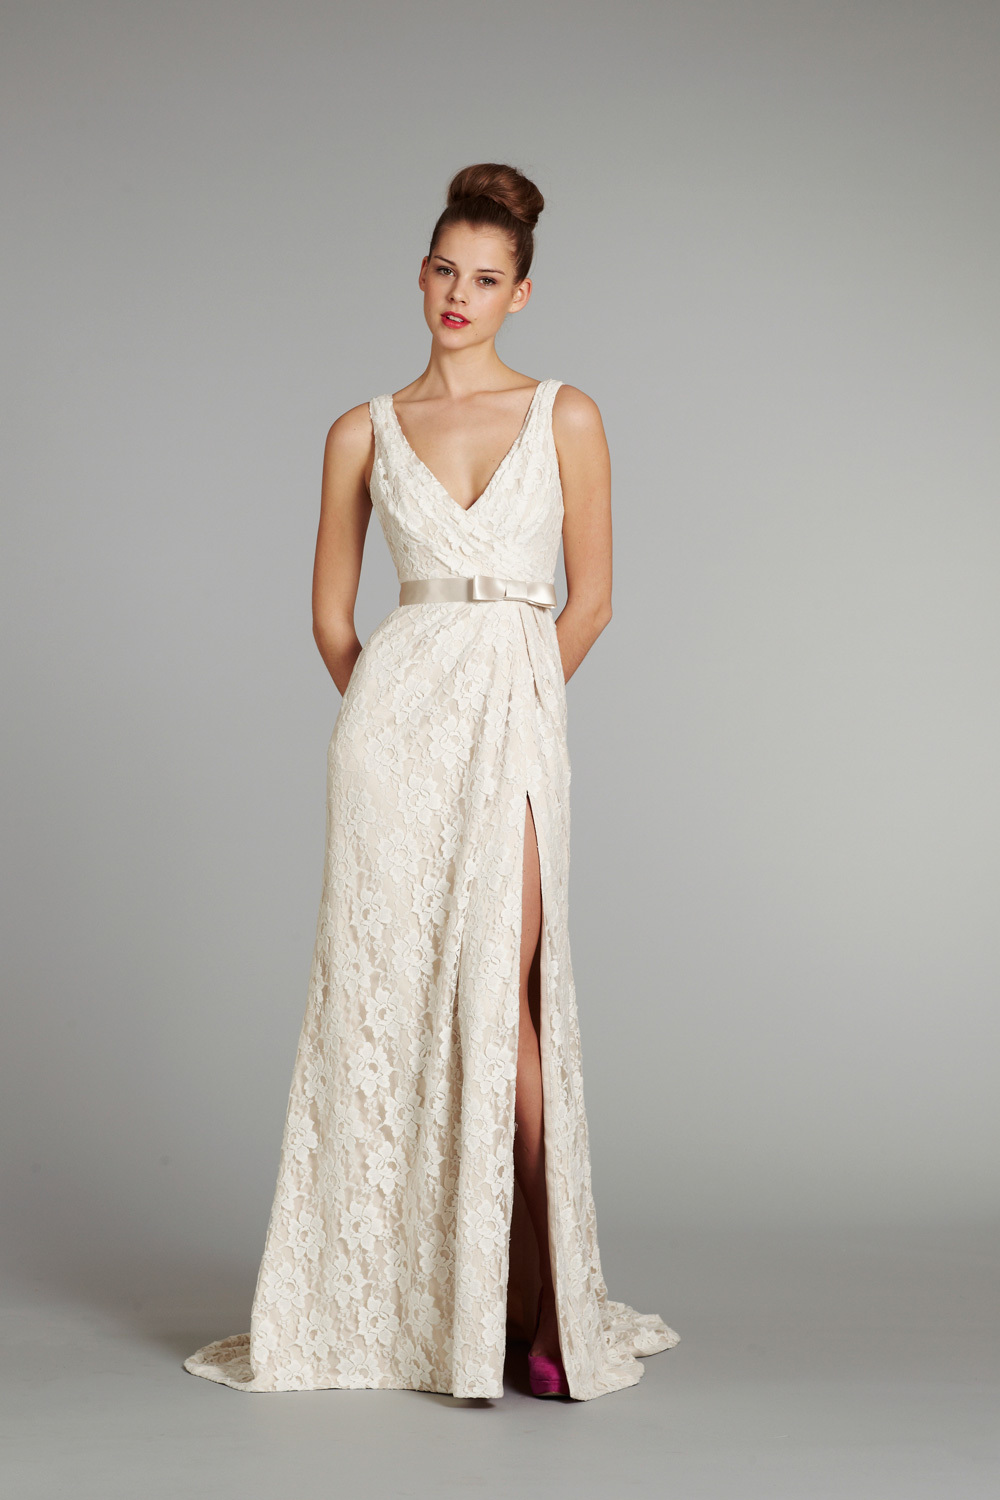 2012-wedding-dresses-bridal-gown-blush-collection-for-jlm-couture-saffron.full